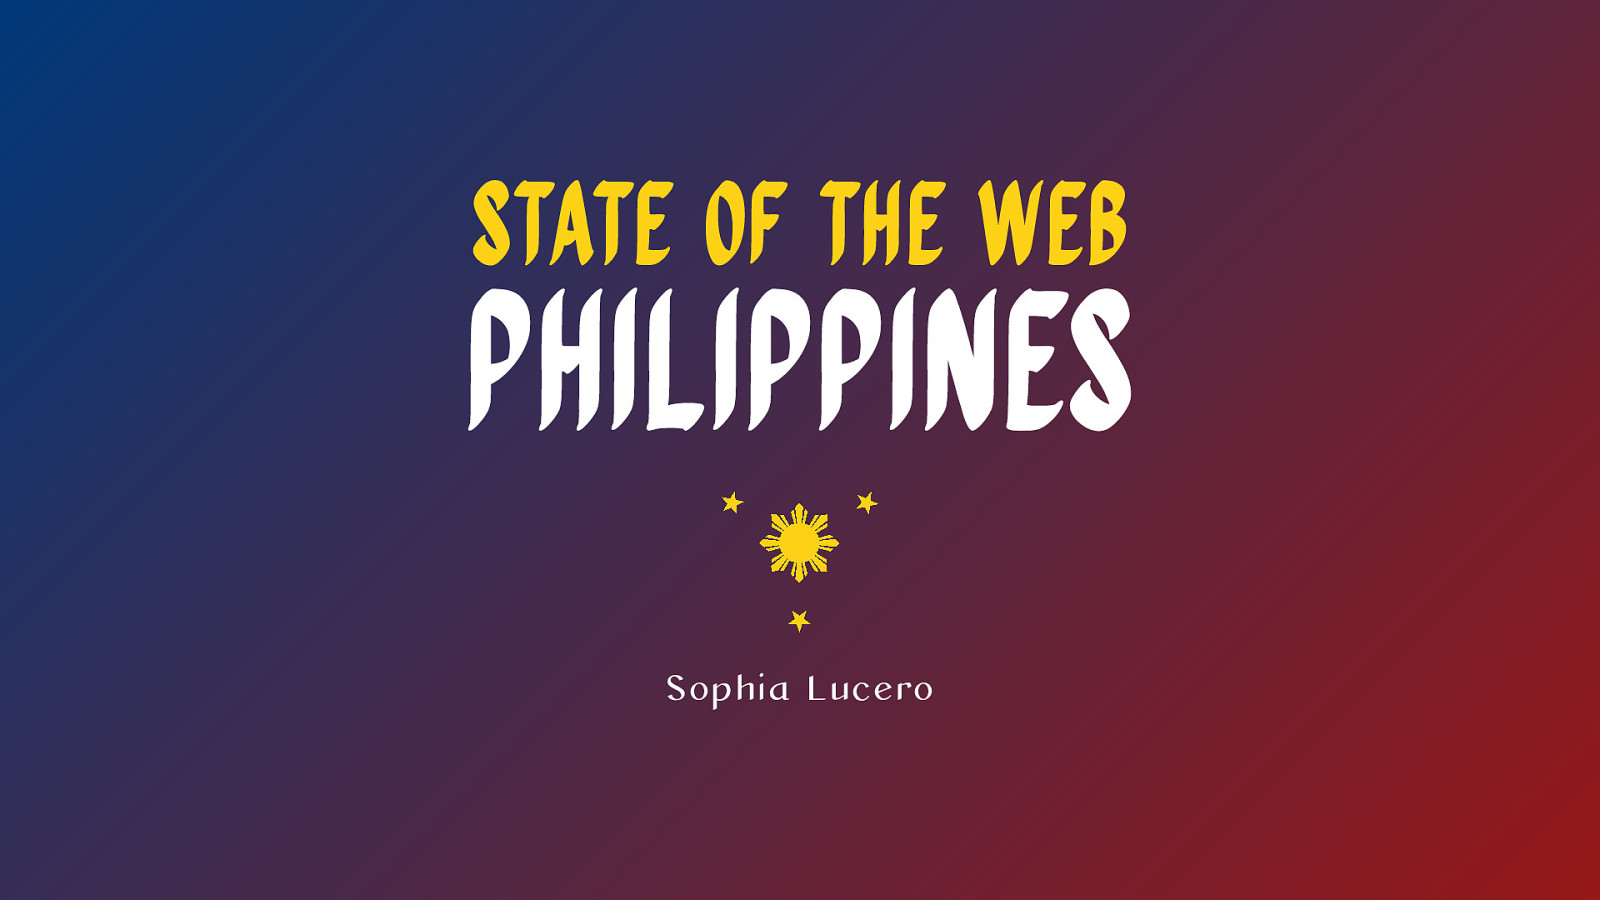 Thumbnail of State of the Web Philippines slides.